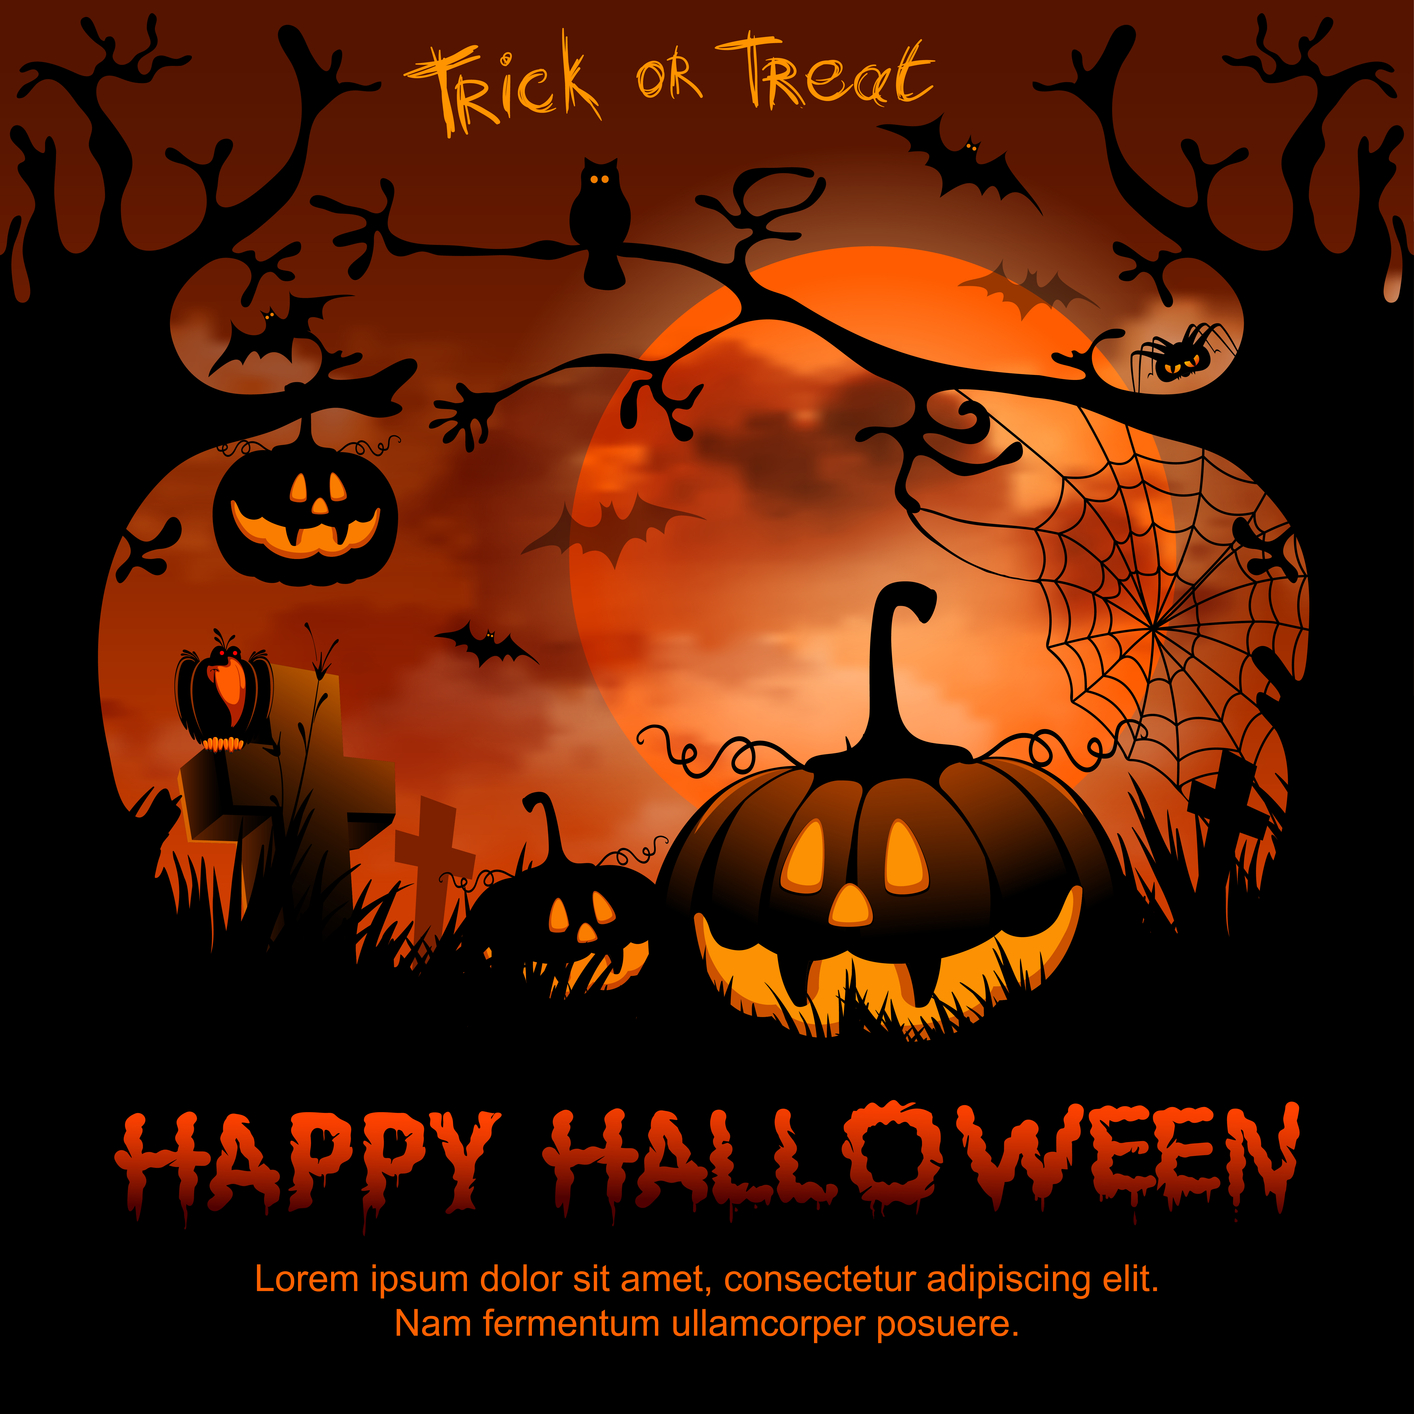 wallpapers desktop pictures backgrounds 8 Scary Halloween Wallpapers 1414x1414